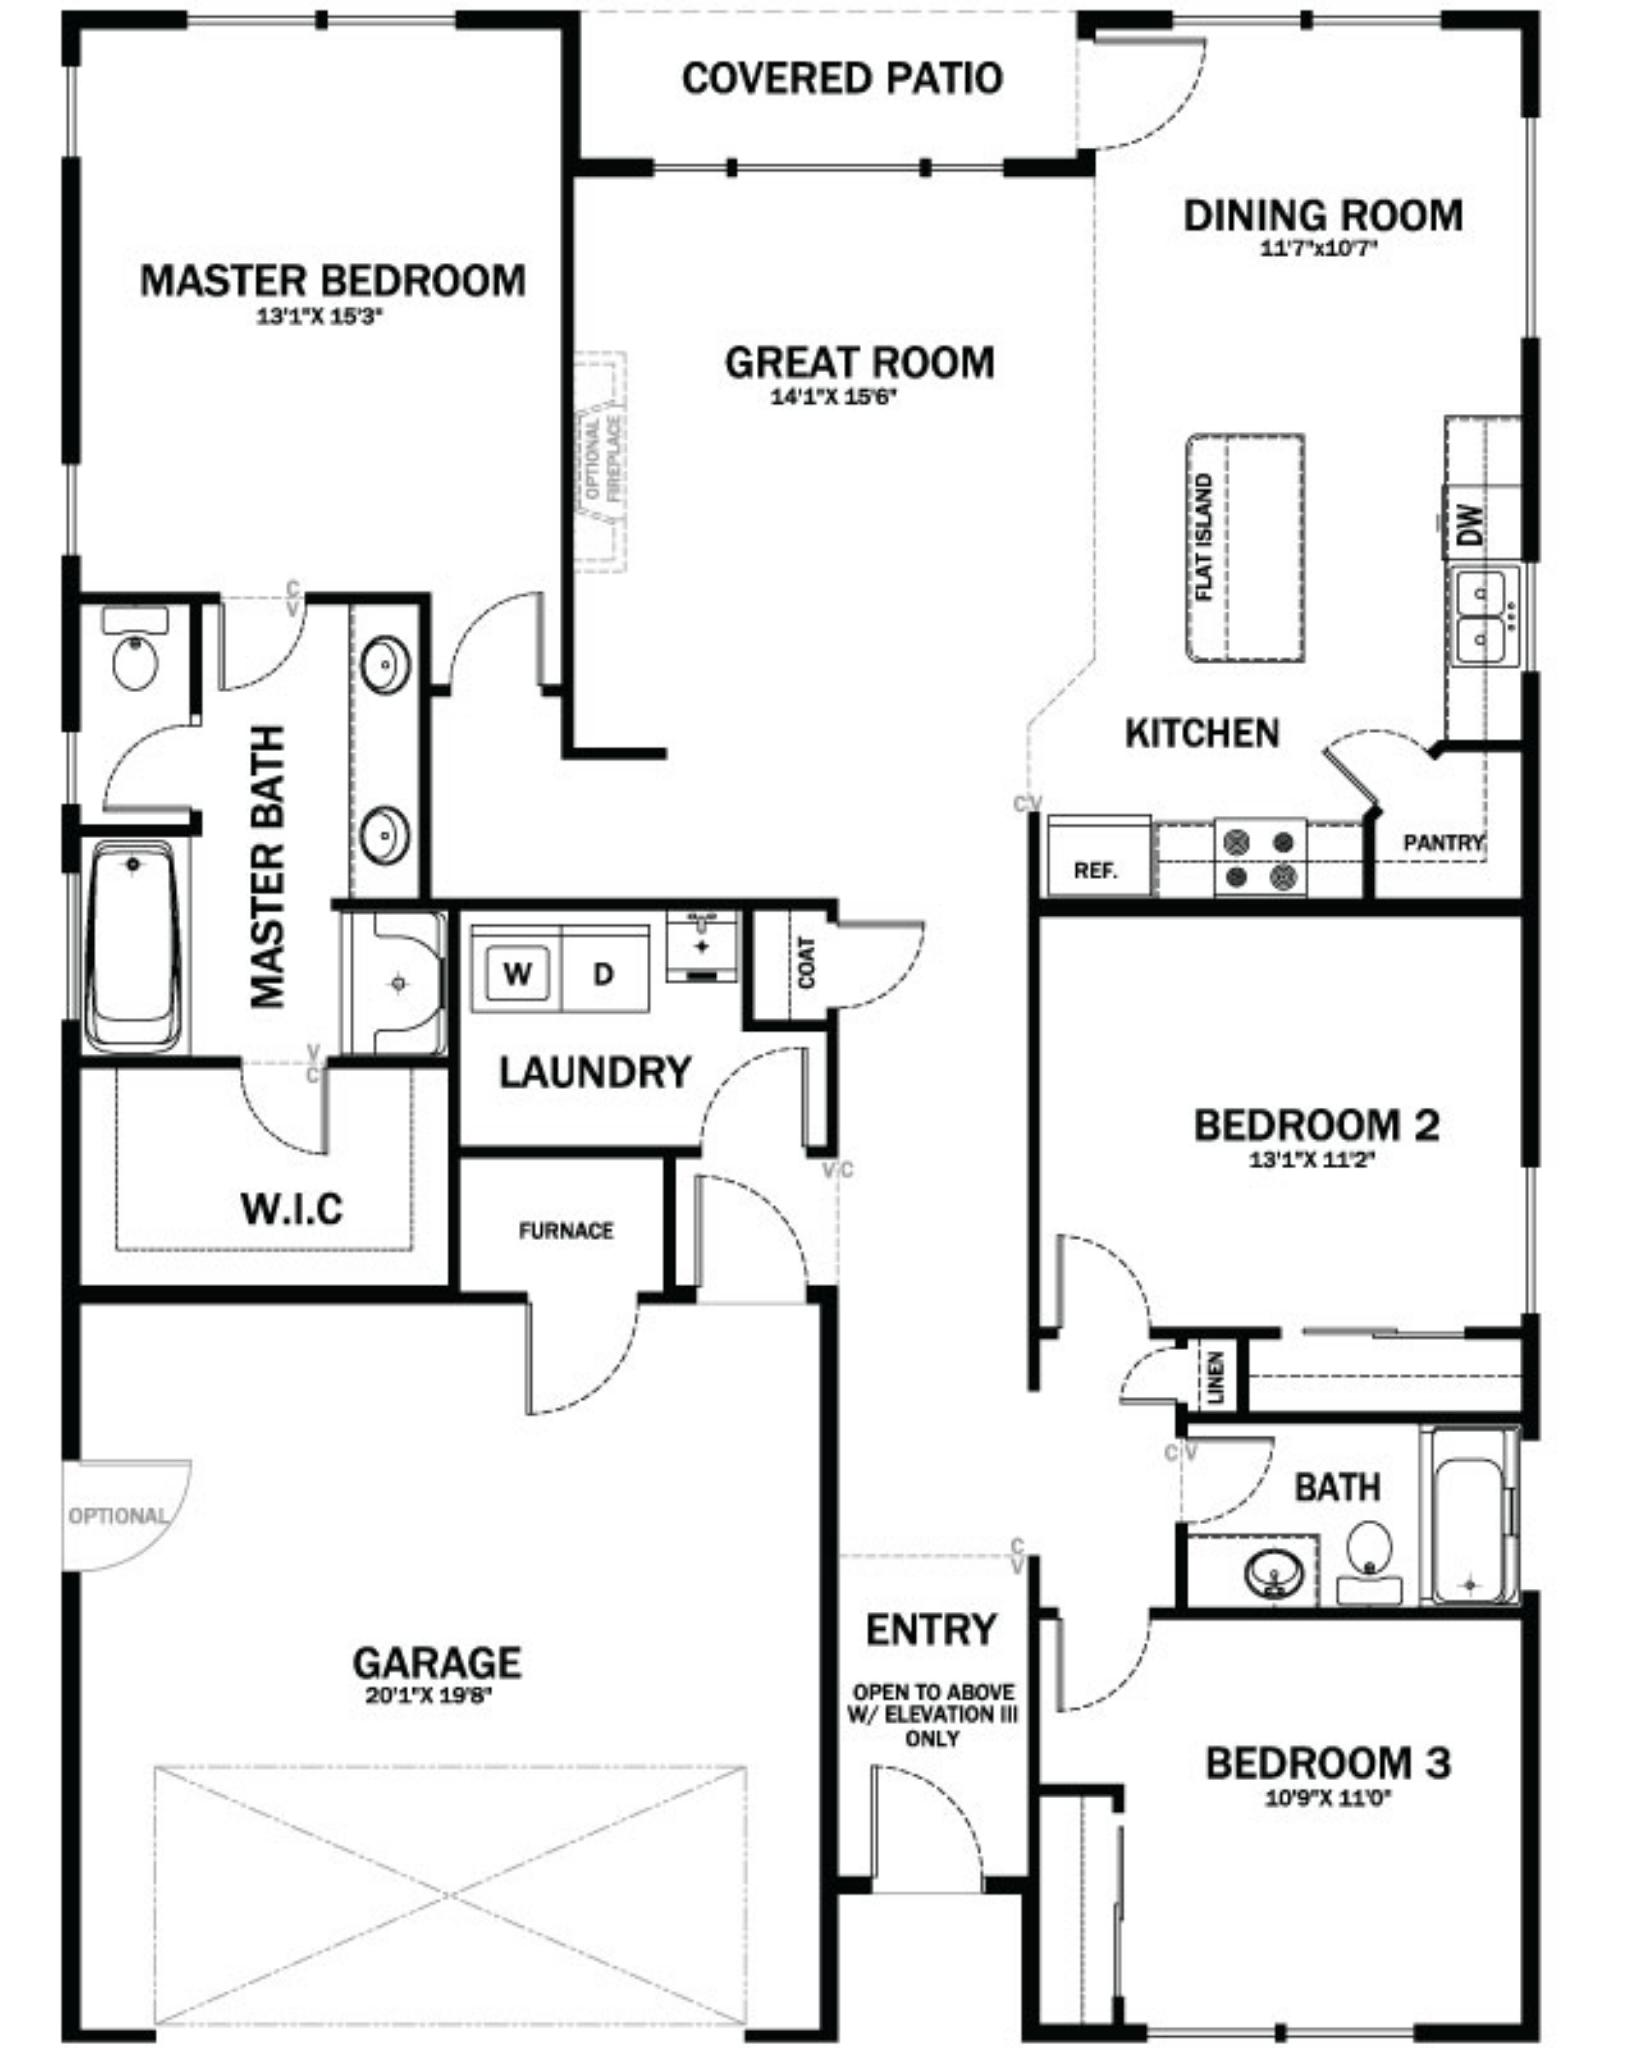 1714 Floor Plan | Washington Home Builder | Aho Construction on small cottage floor plans, new one story house plans, simple one story house plans, open one story house plans, best open floor plans, single family floor plans, single level small home plans, large single level home plans, 3 br floor plans, small modular homes floor plans, retirement one level home plans, one level floor plans, beaufort style house plans, single level open floor plans, large one level house plans, single level modular homes, one level craftsman house plans, large single level floor plans, custom one story floor plans, single level log homes,